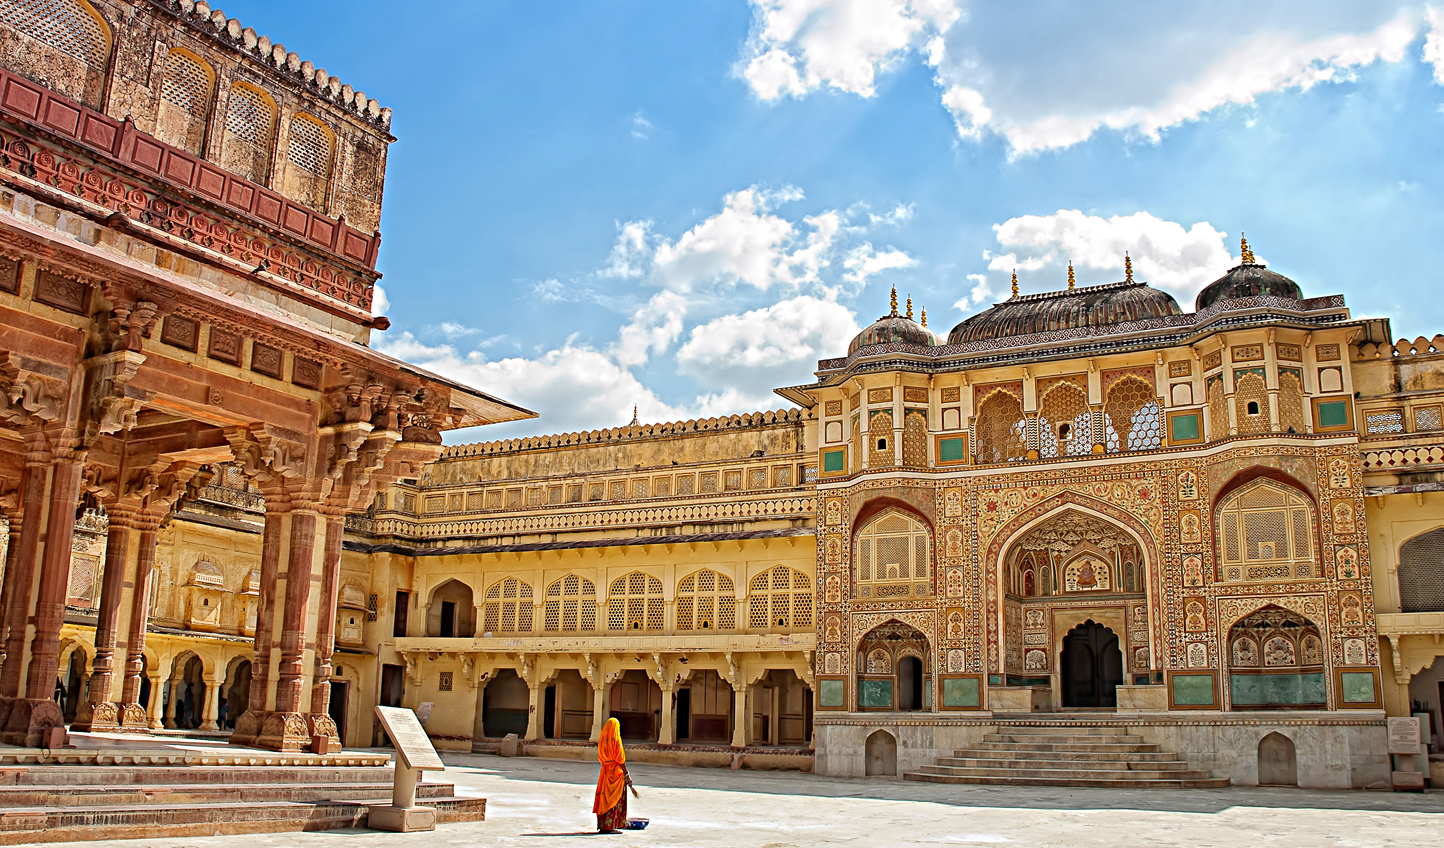 Admire the stunning architecture of Jaipur's City Palace